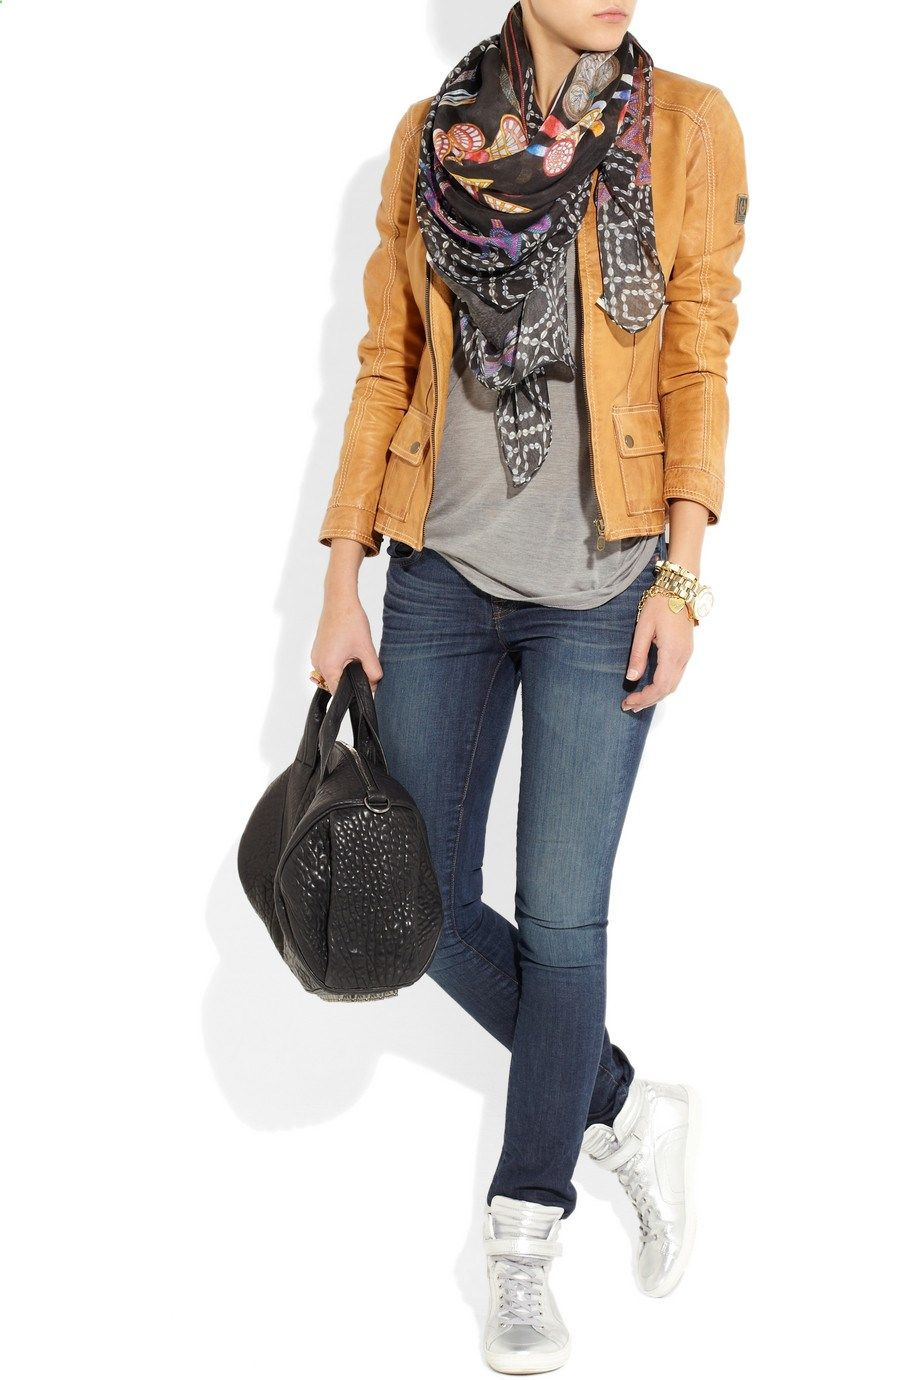 247bb7e5920 Belstaff jacket, Swash scarf, Kain top, J. Brand Denim jeans, Alexander  Wang bag, Pierre Hardy shoes